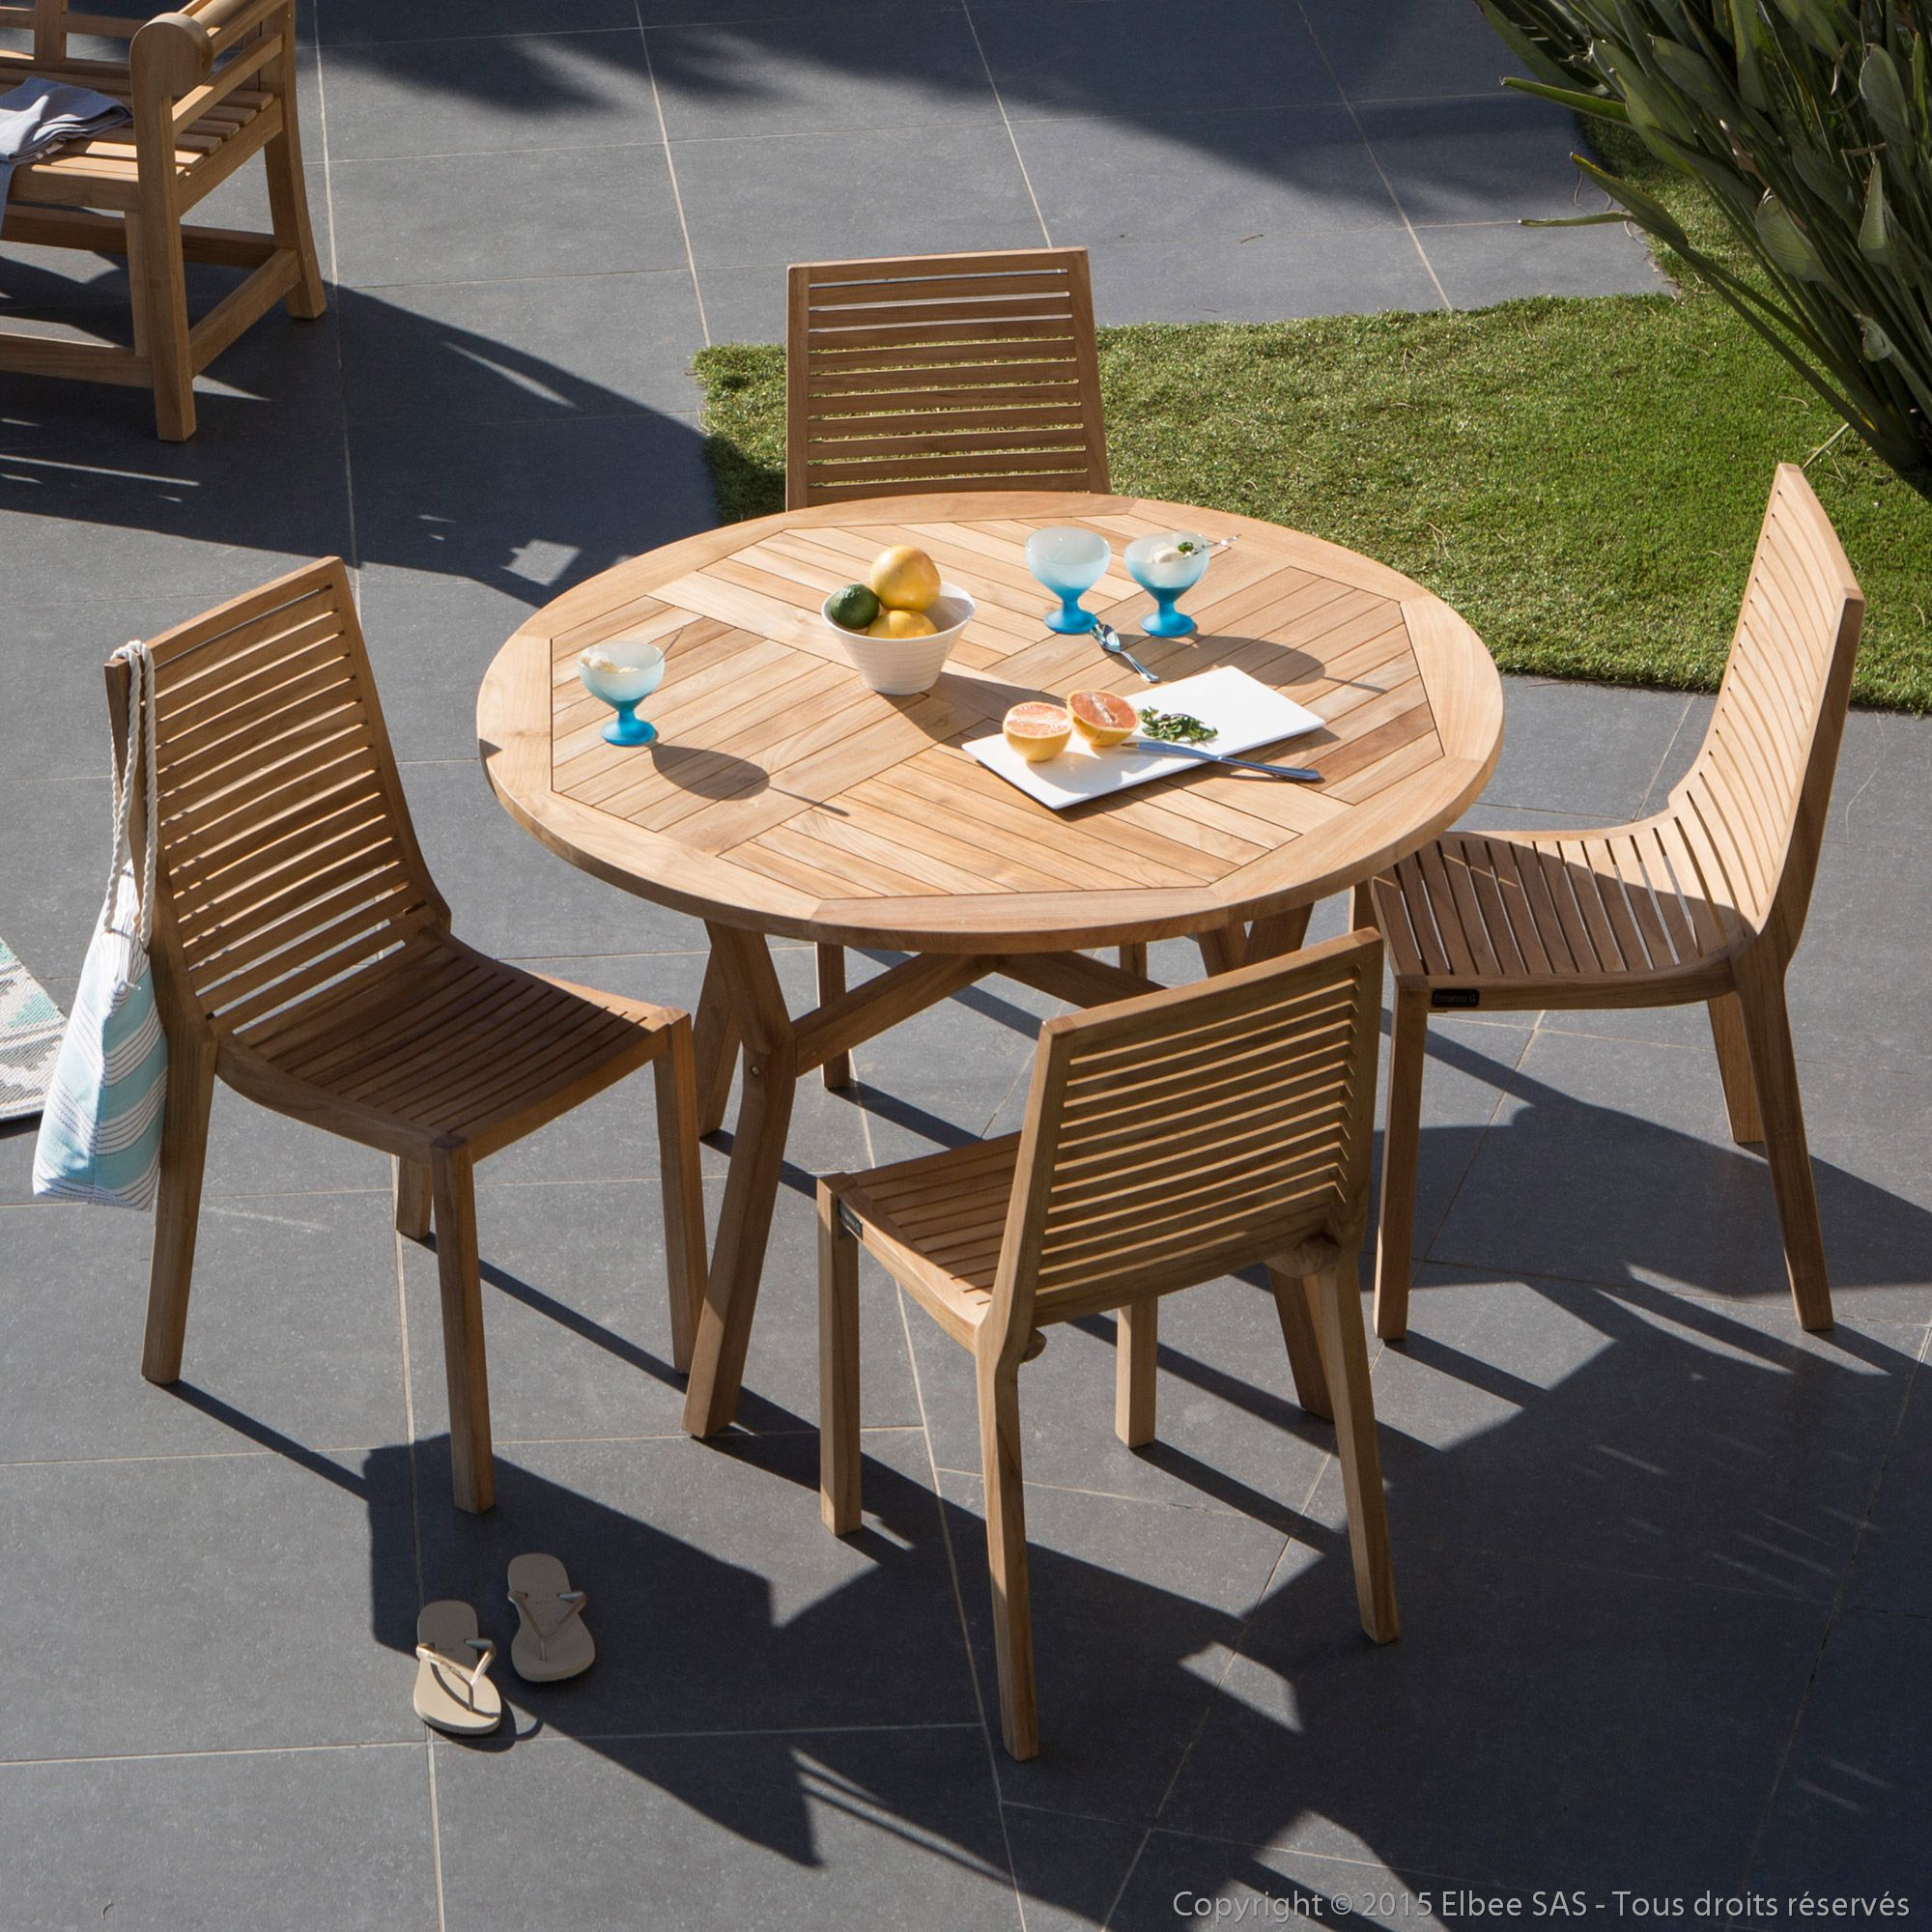 Salon de jardin 4 places en teck brut : 1 table ronde 120cm + 4 ...